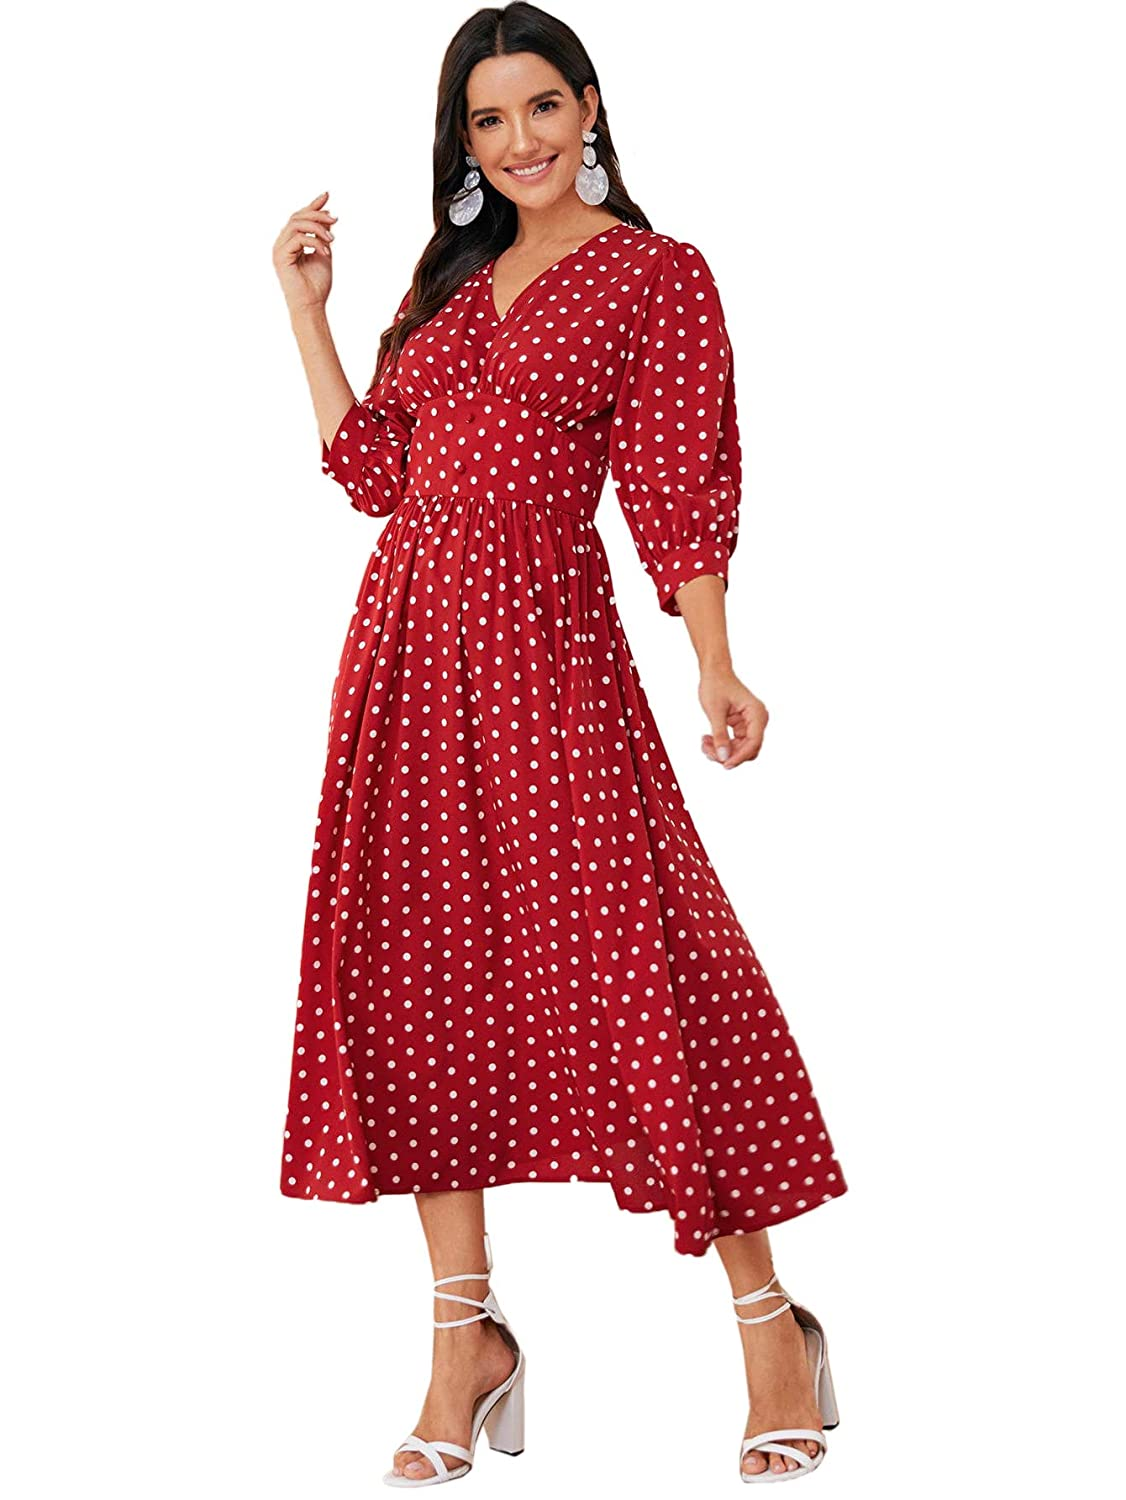 500 Vintage Style Dresses for Sale | Vintage Inspired Dresses Verdusa Womens Polka Dot Buttoned Bishop 3/4 Sleeve Fit & Flare Maxi Dress $37.99 AT vintagedancer.com